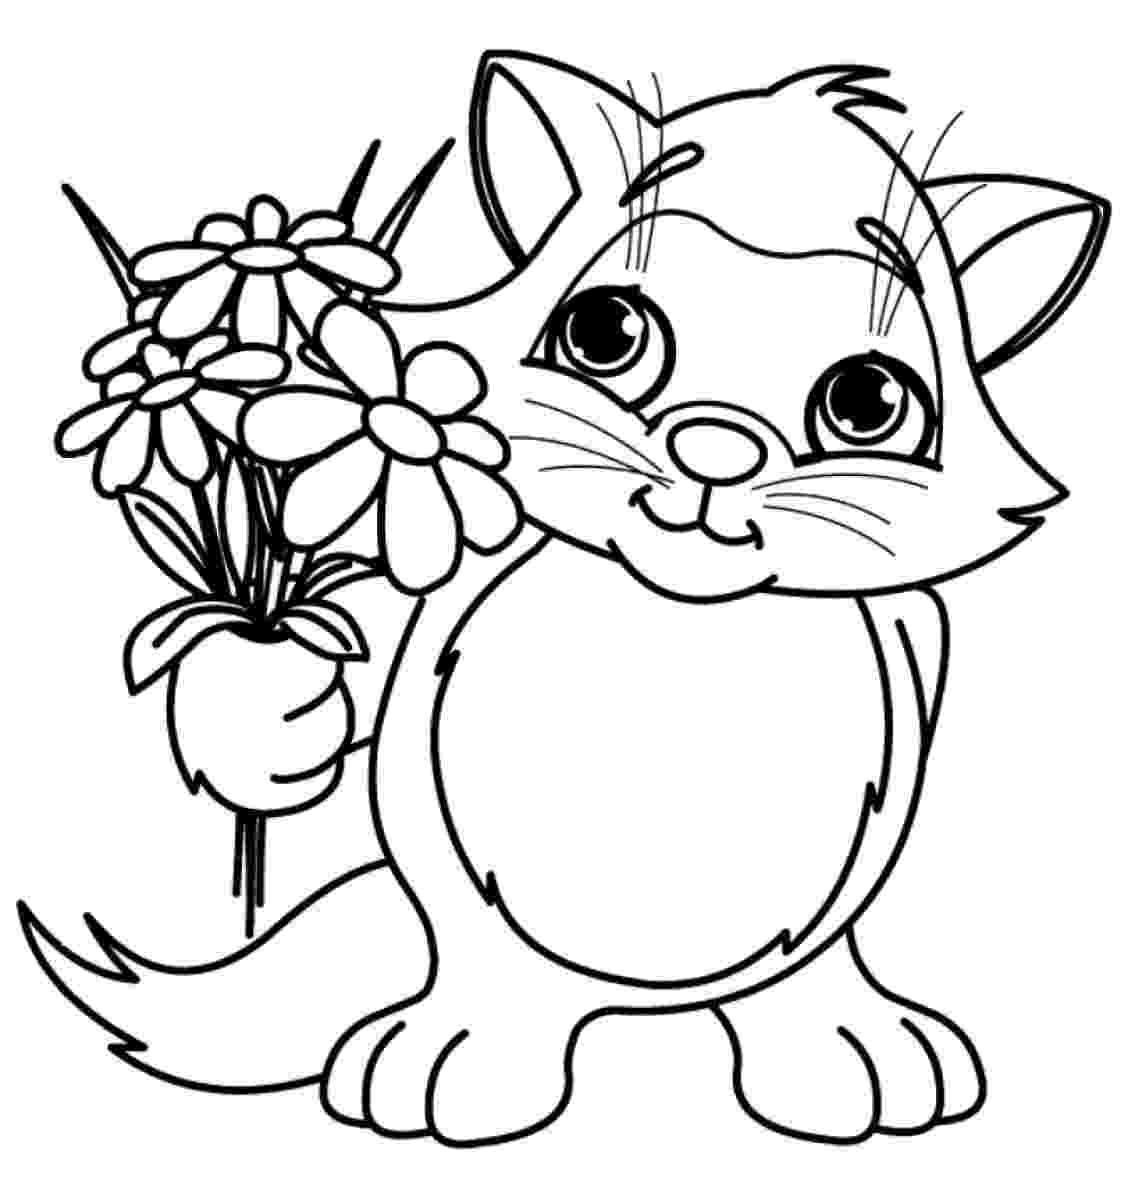 free printable spring flower coloring pages spring flower coloring pages to download and print for free coloring flower free printable spring pages